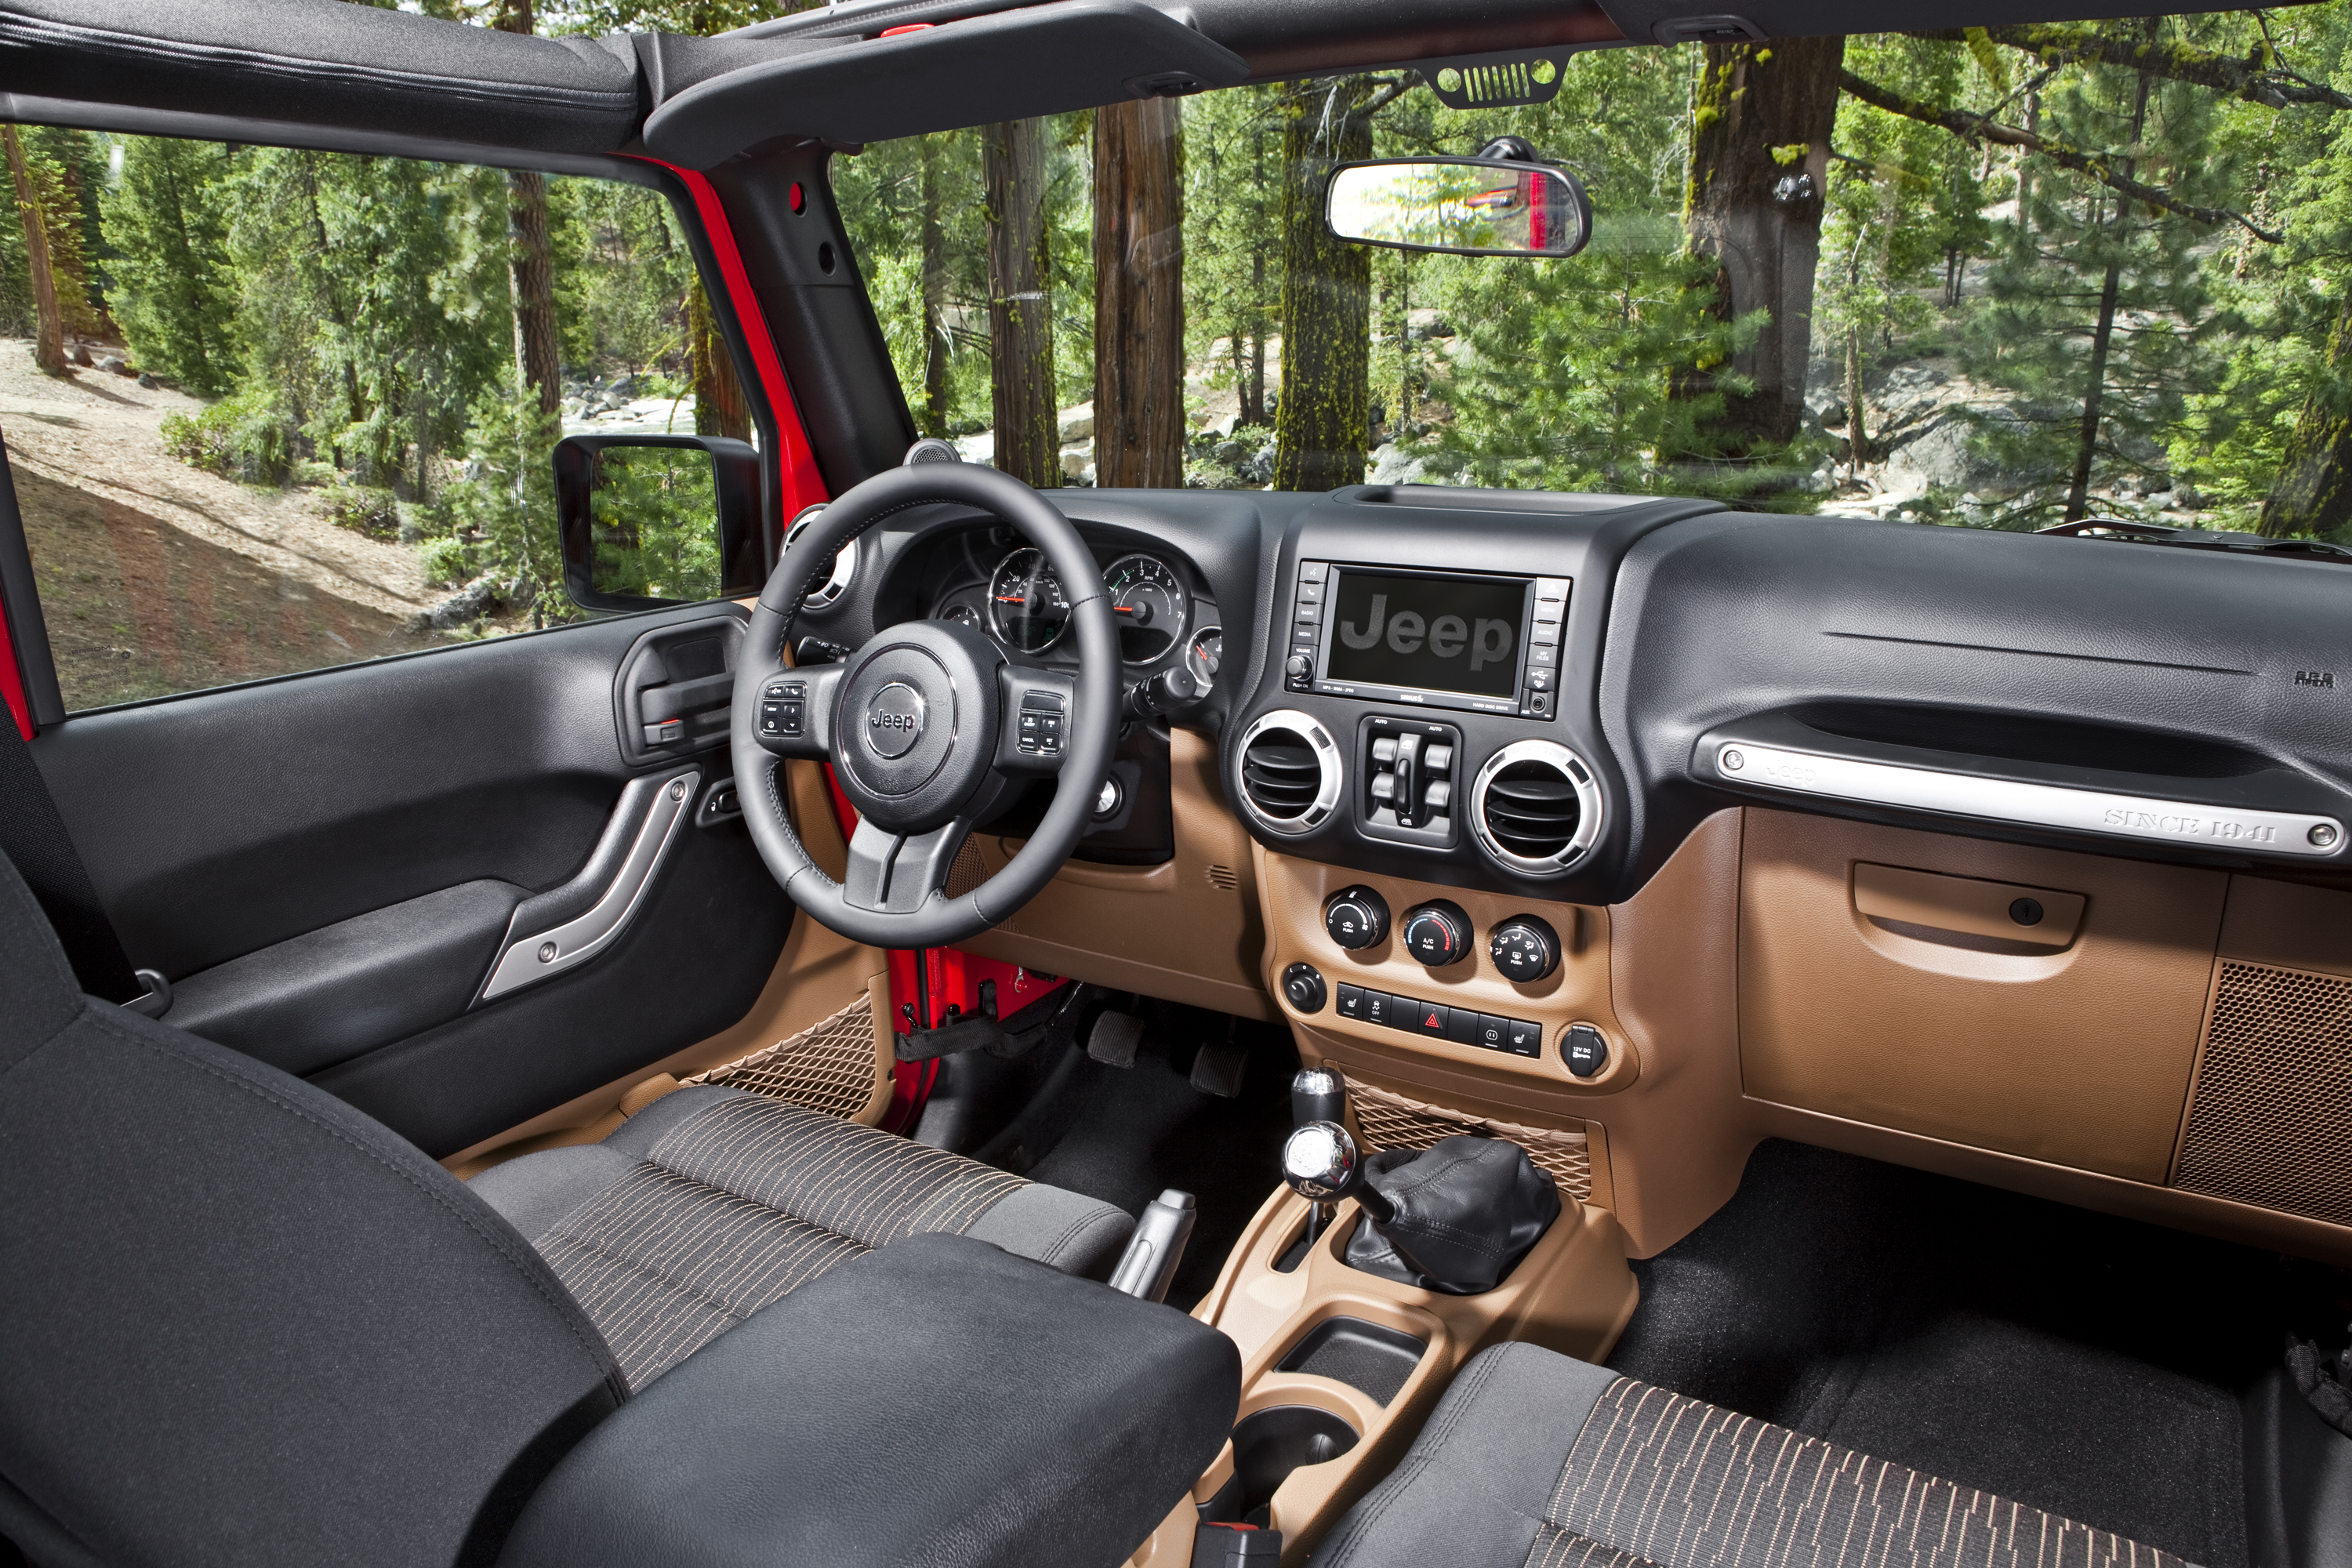 2012 jeep wrangler unlimited sahara interior kevinspocket. Black Bedroom Furniture Sets. Home Design Ideas